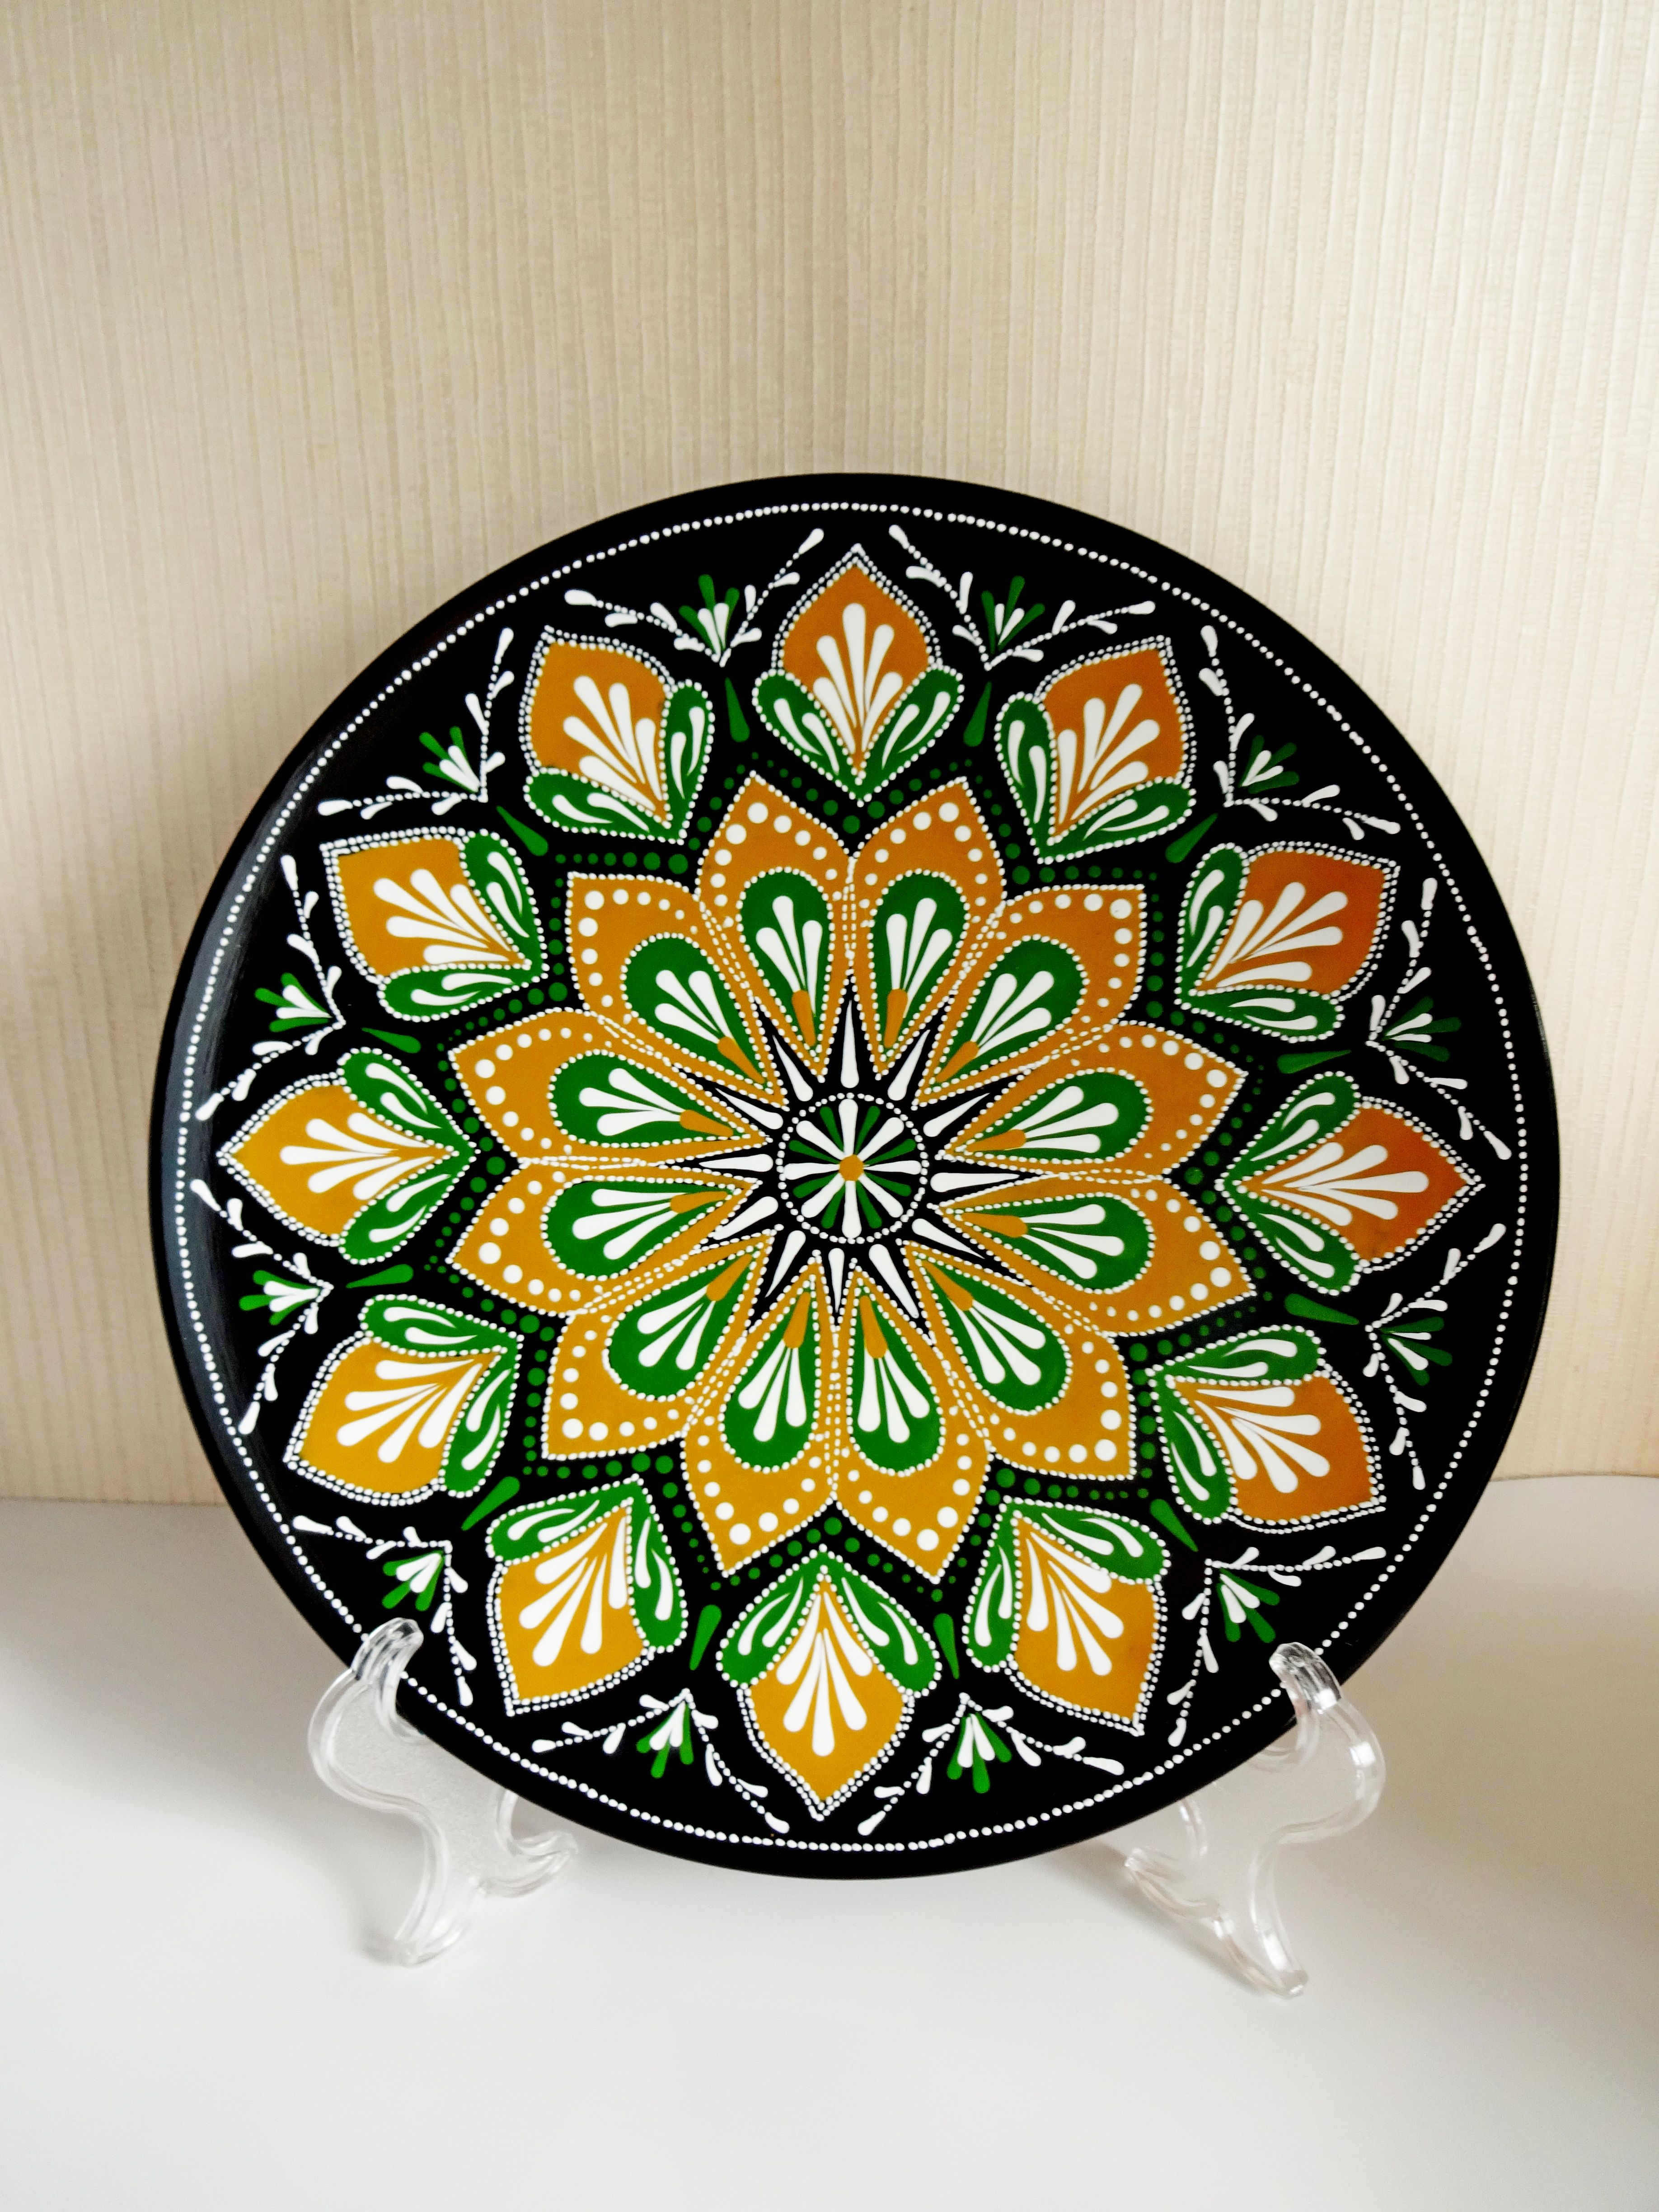 Decorative Plates For Hanging Restaurant Wall Decor Large Decorative Hand Painted Plate Large Decorative Christmas Plate Majolica Plates In 2021 Hand Painted Plates Decorative Plates Restaurant Wall Decor